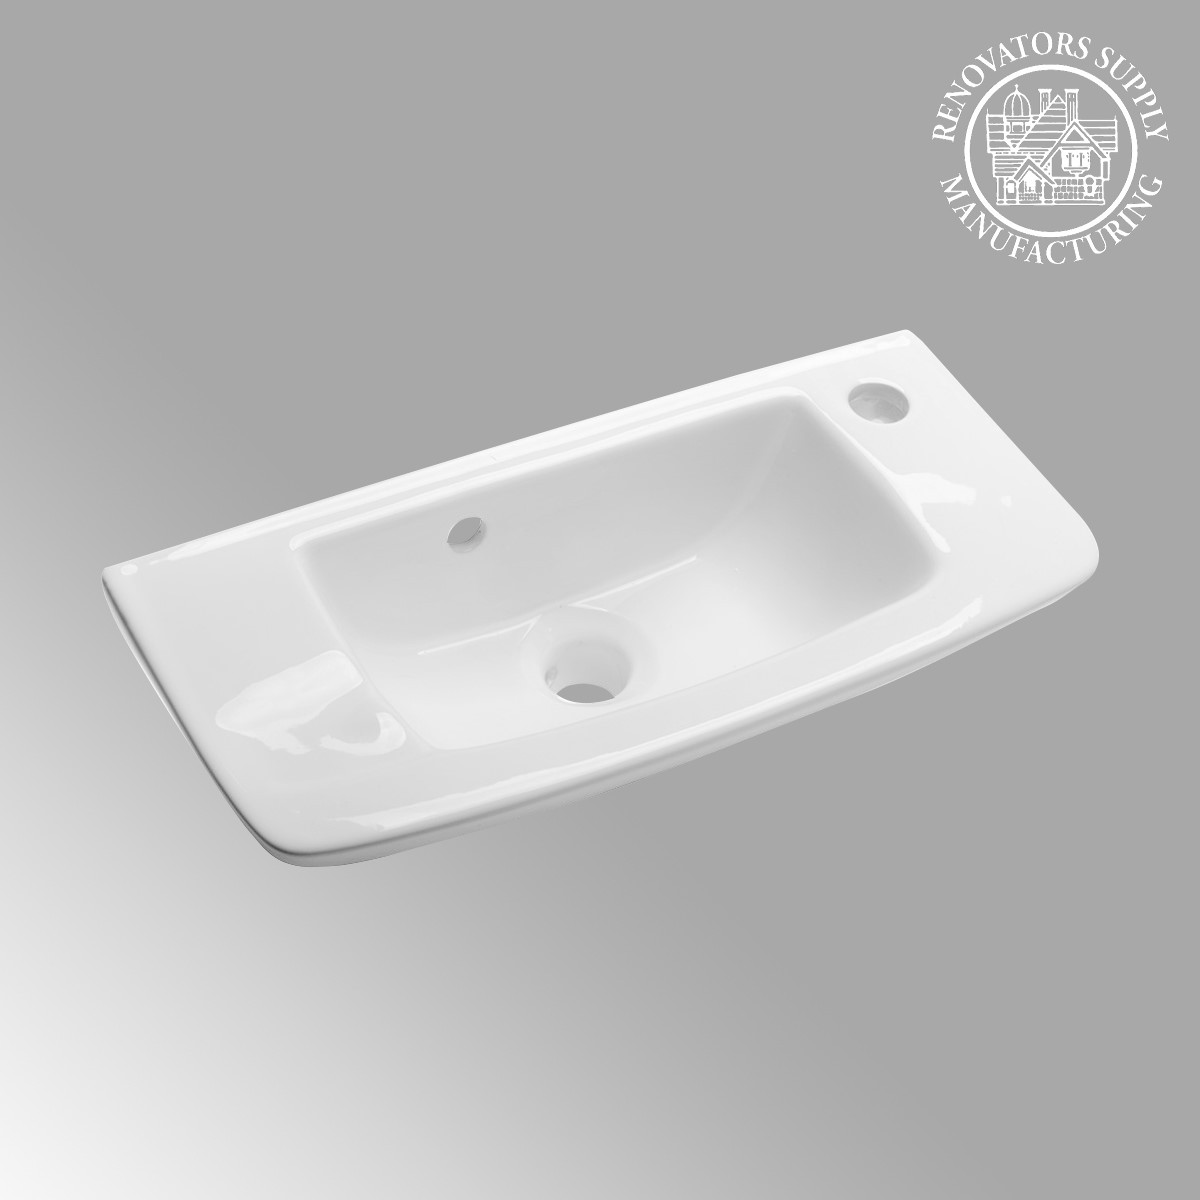 Small wall mount vessel sink grade a vitreous china for Tiny bathroom sink